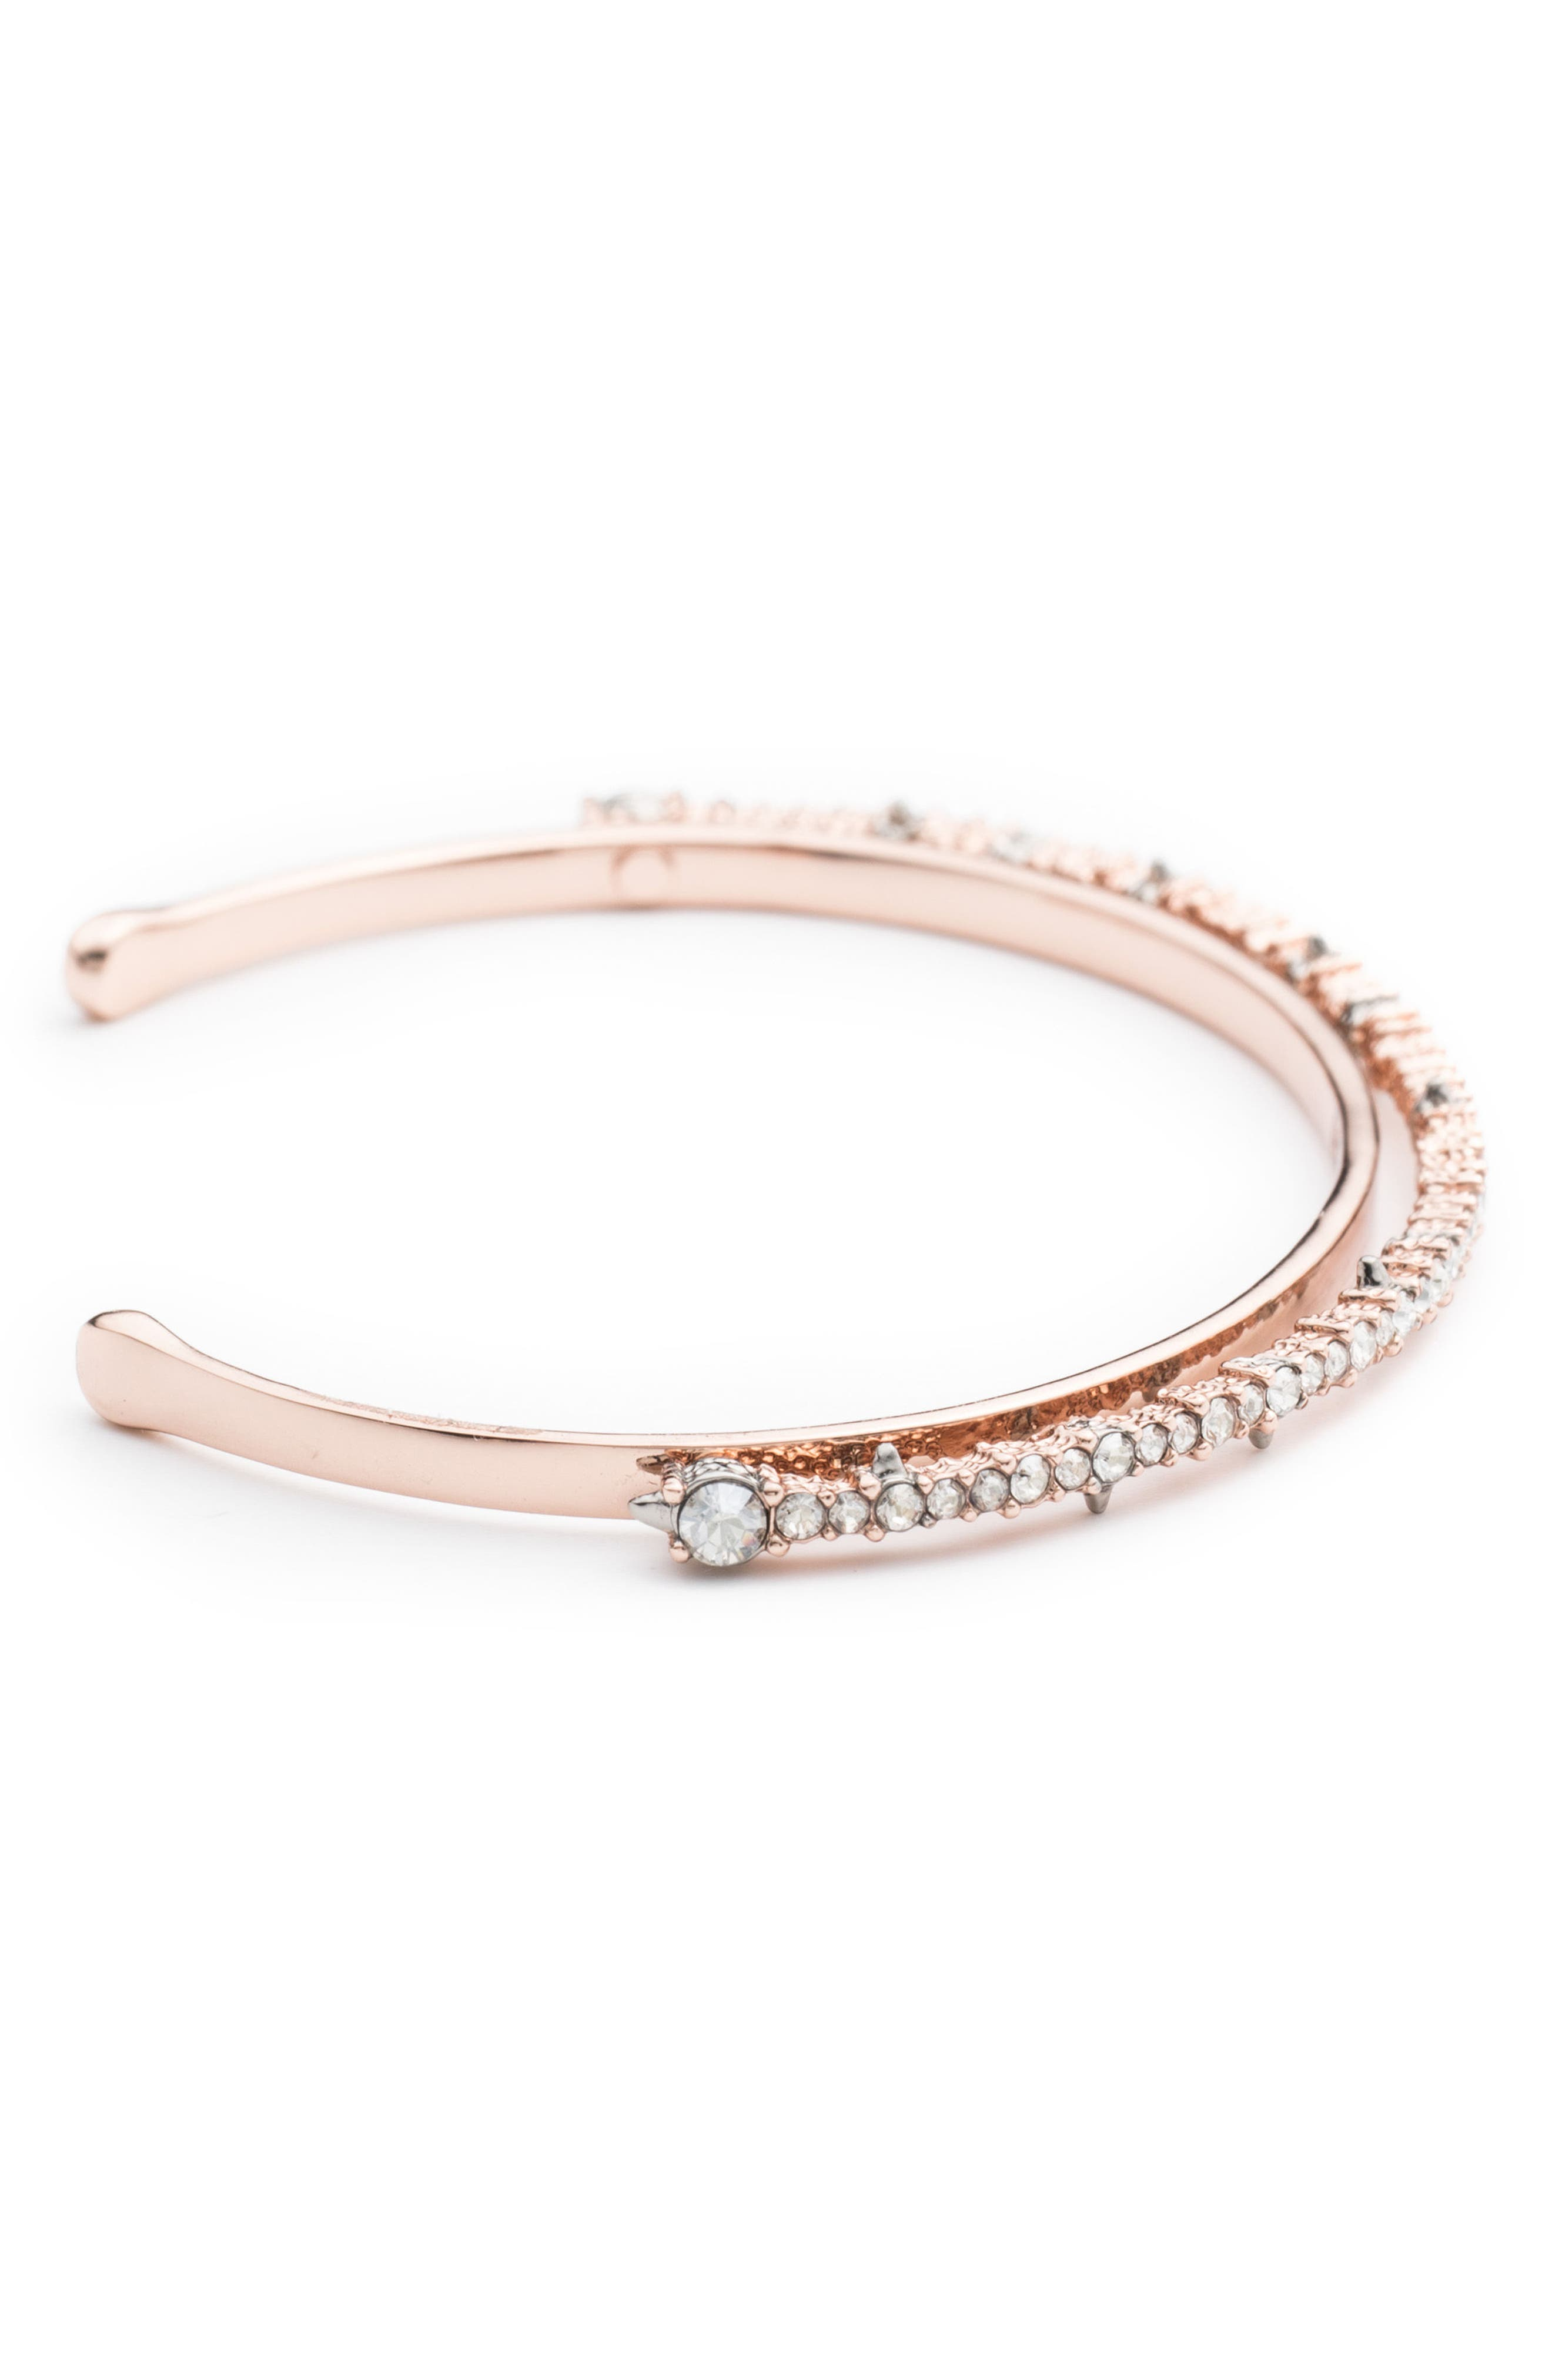 Crystal Lace Orbiting Wrist Cuff,                             Alternate thumbnail 3, color,                             ROSE GOLD